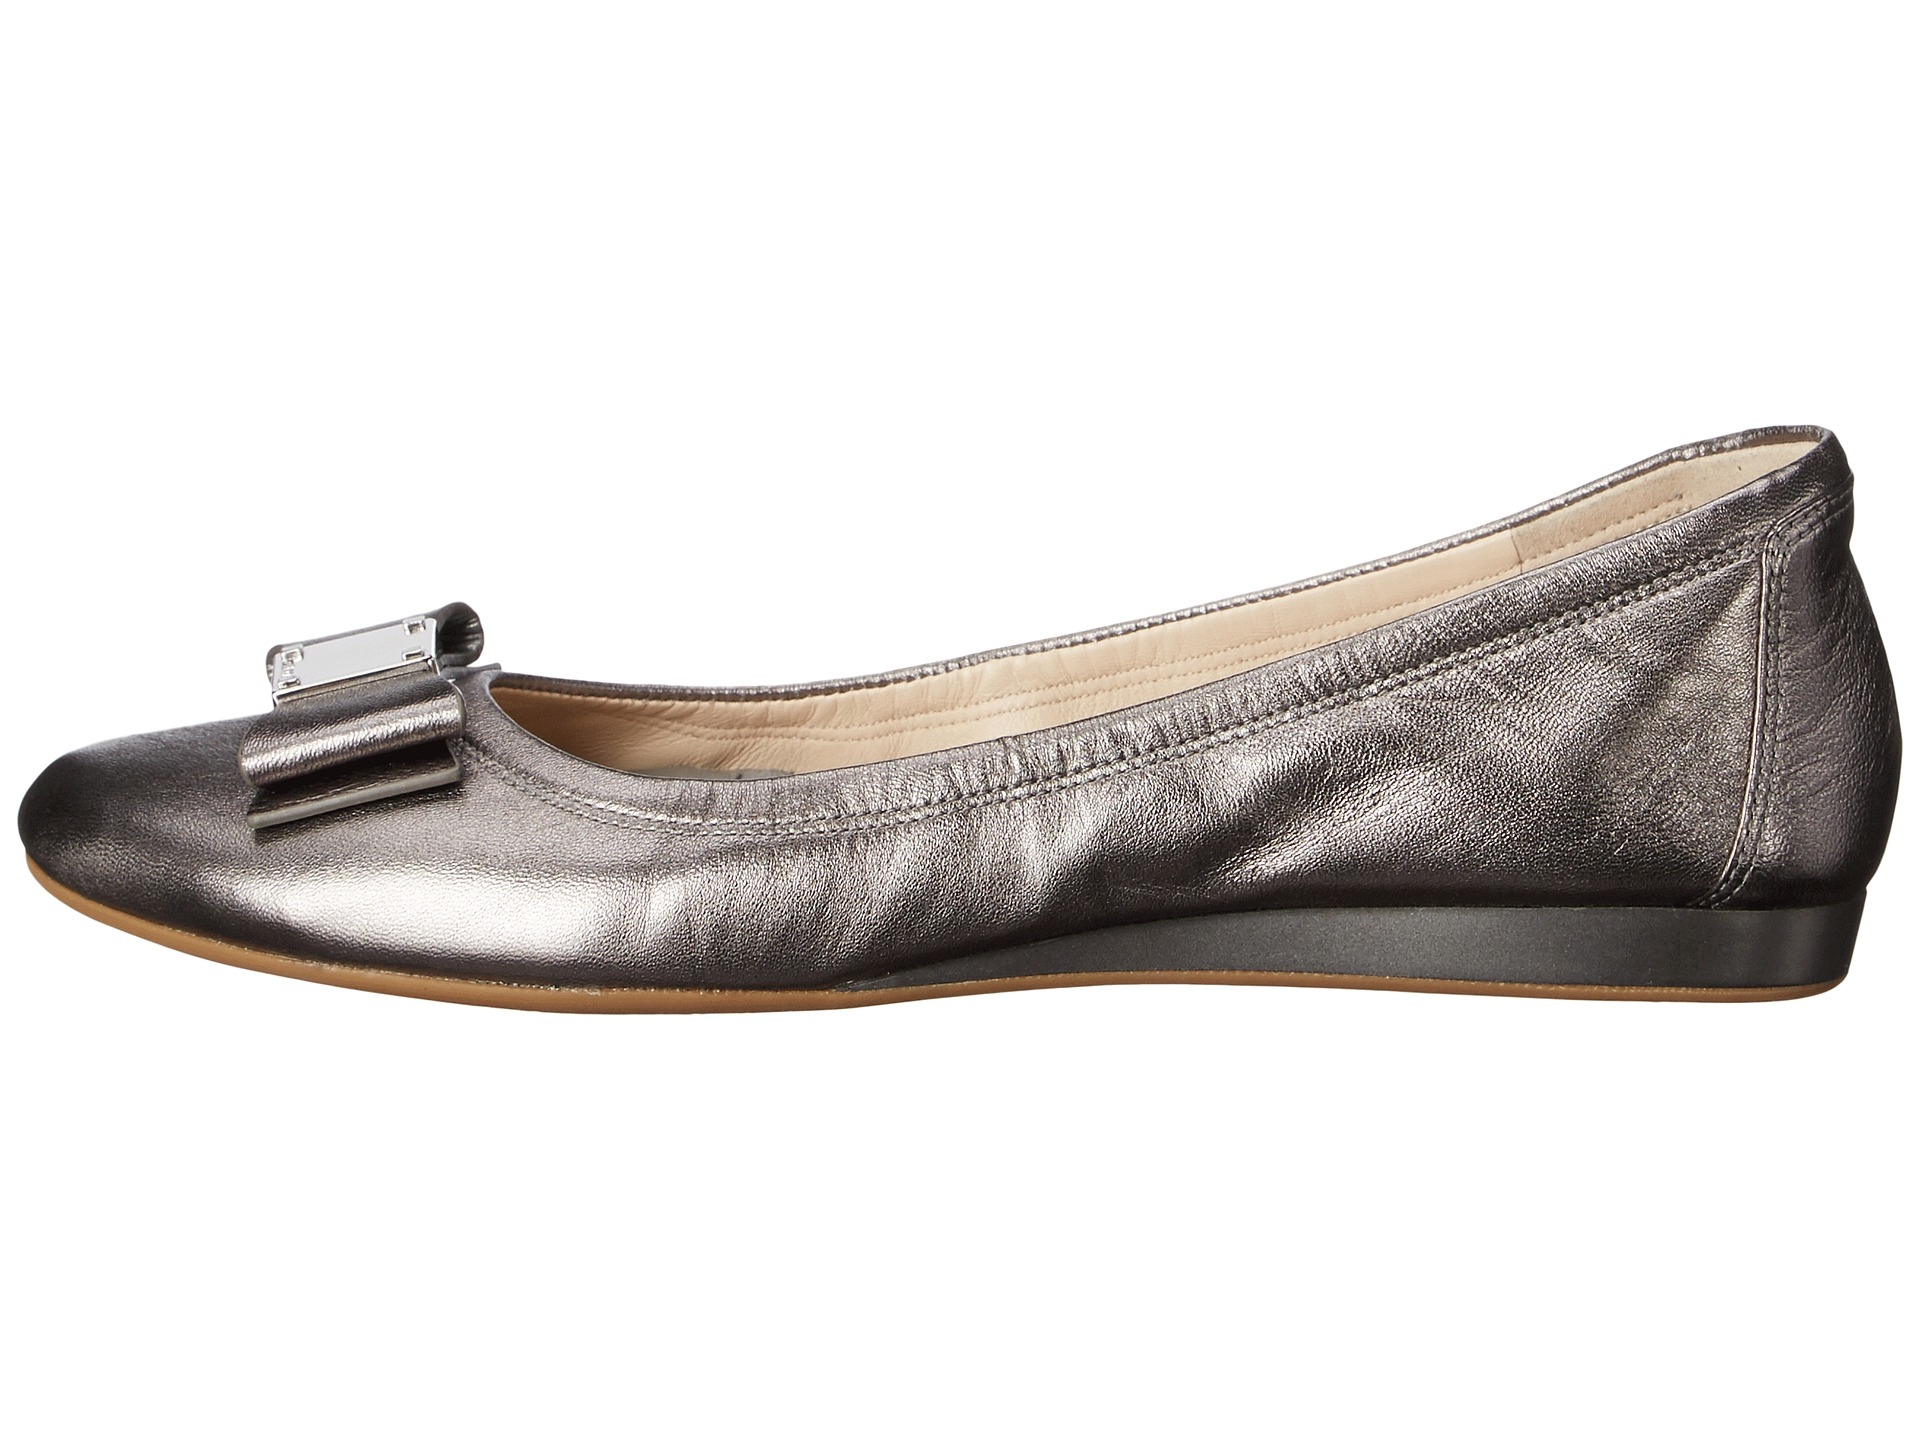 Nike And Cole Haan Ballet Shoes Women